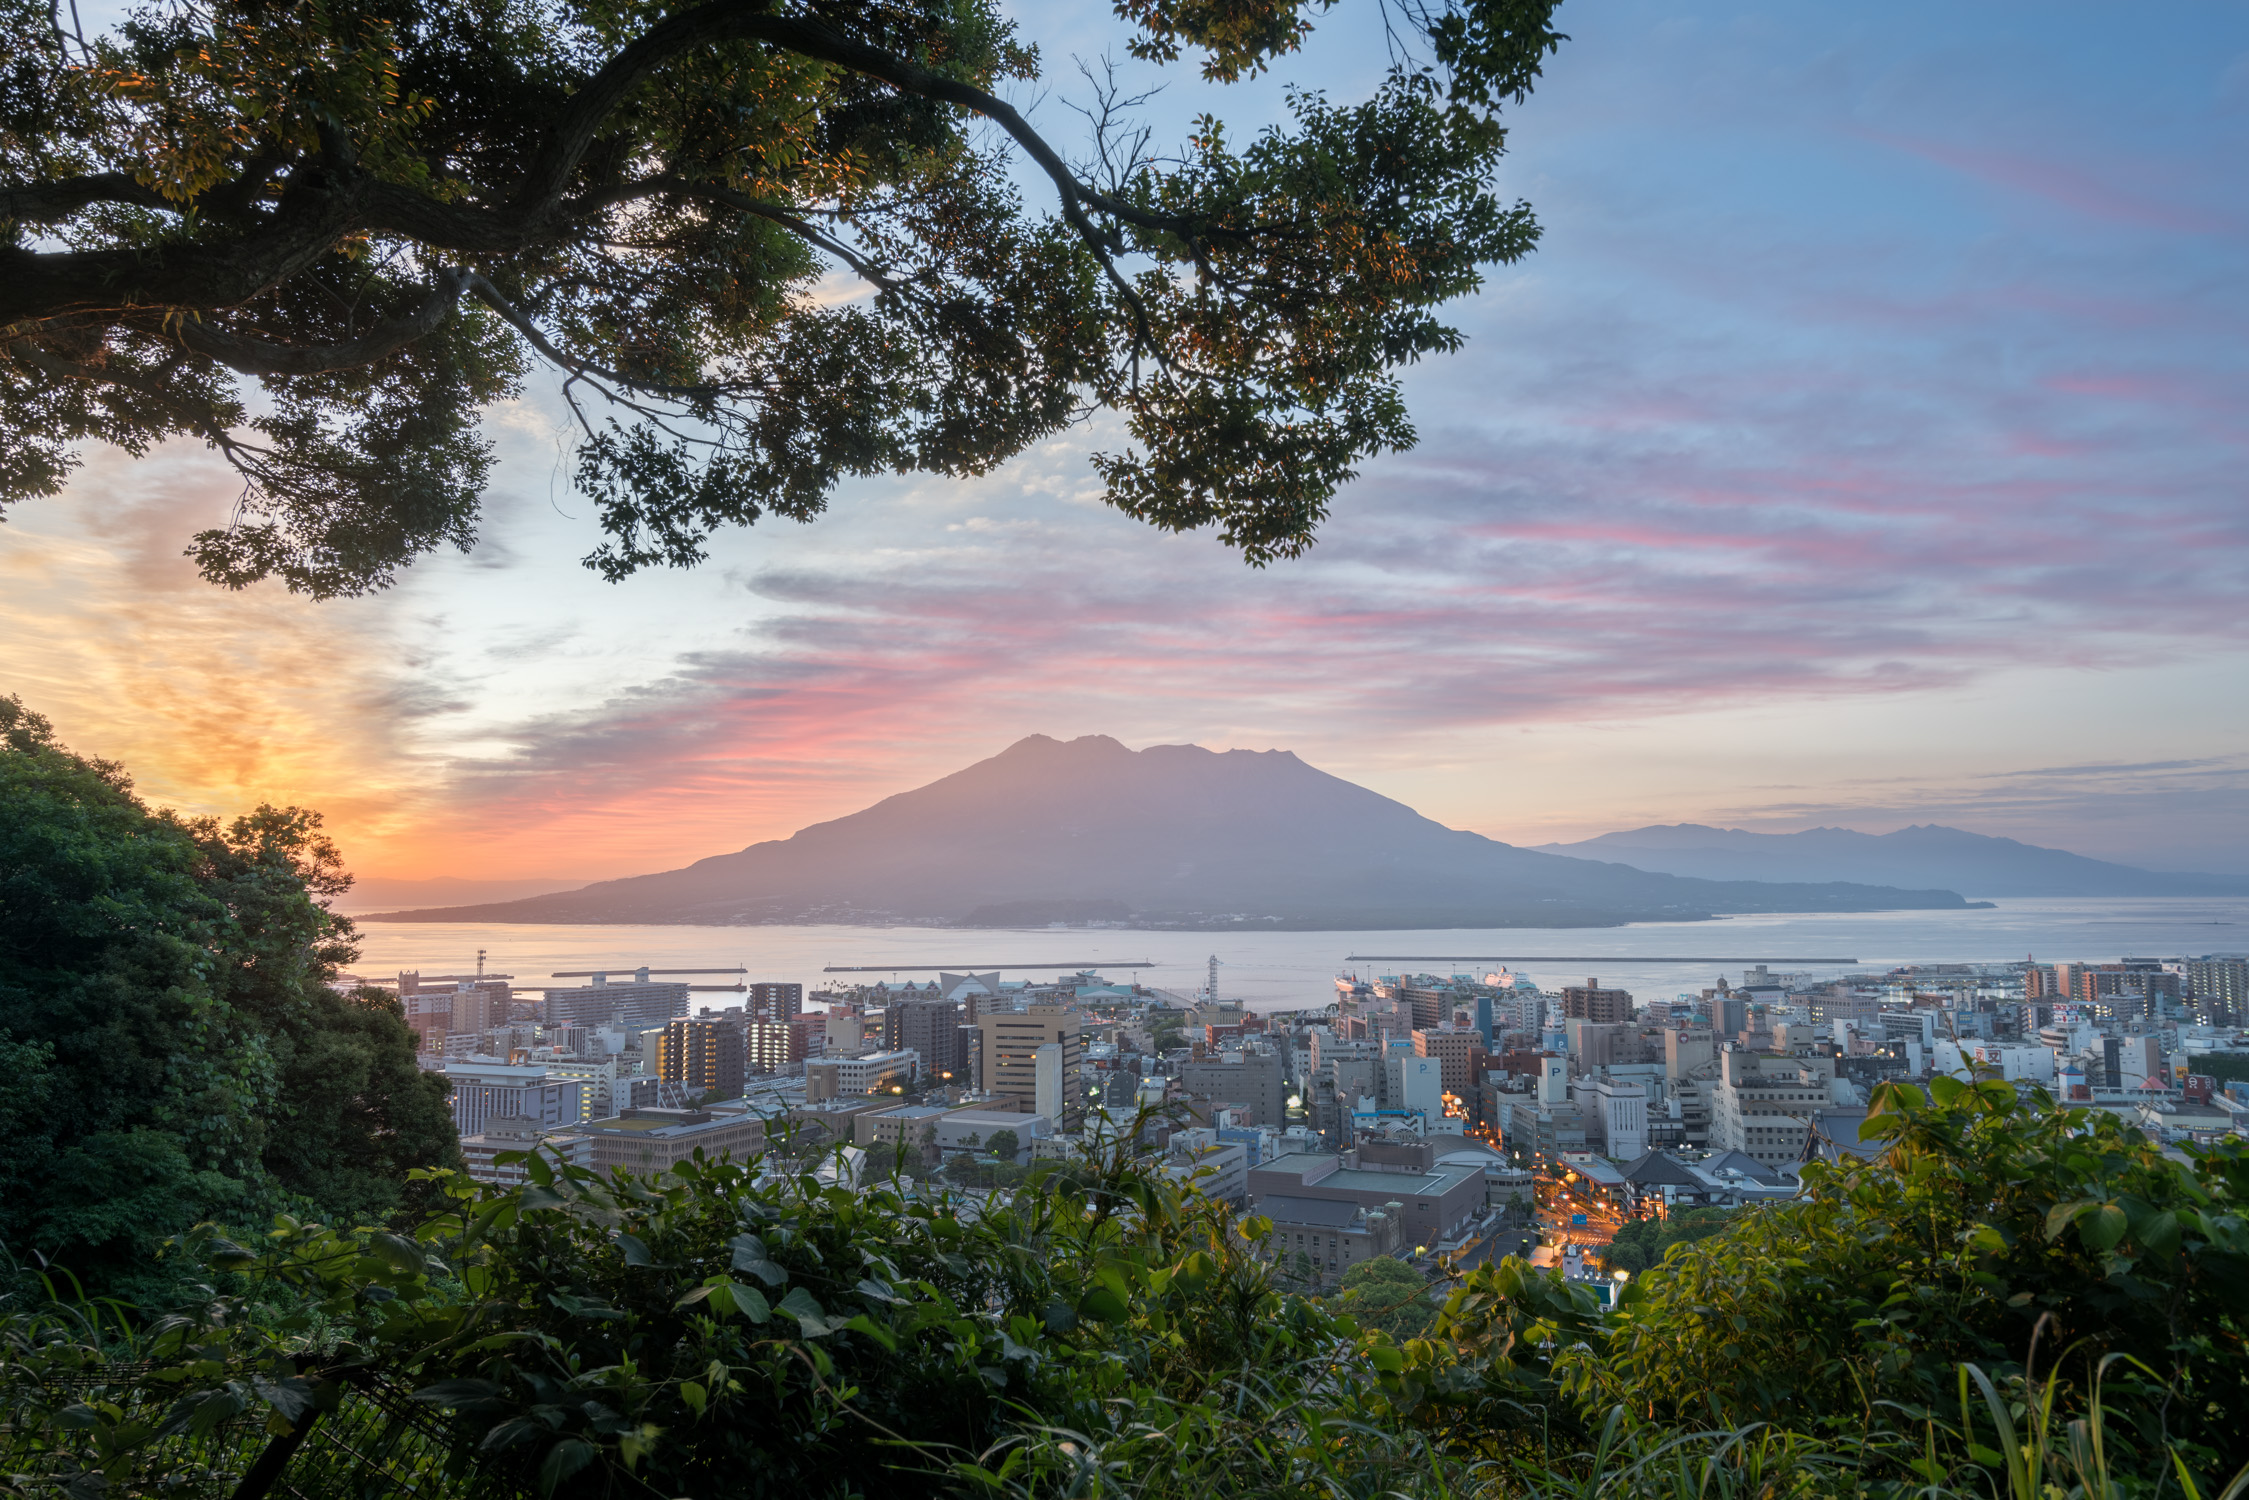 Kagoshima volcano during sunrise [David Tan]